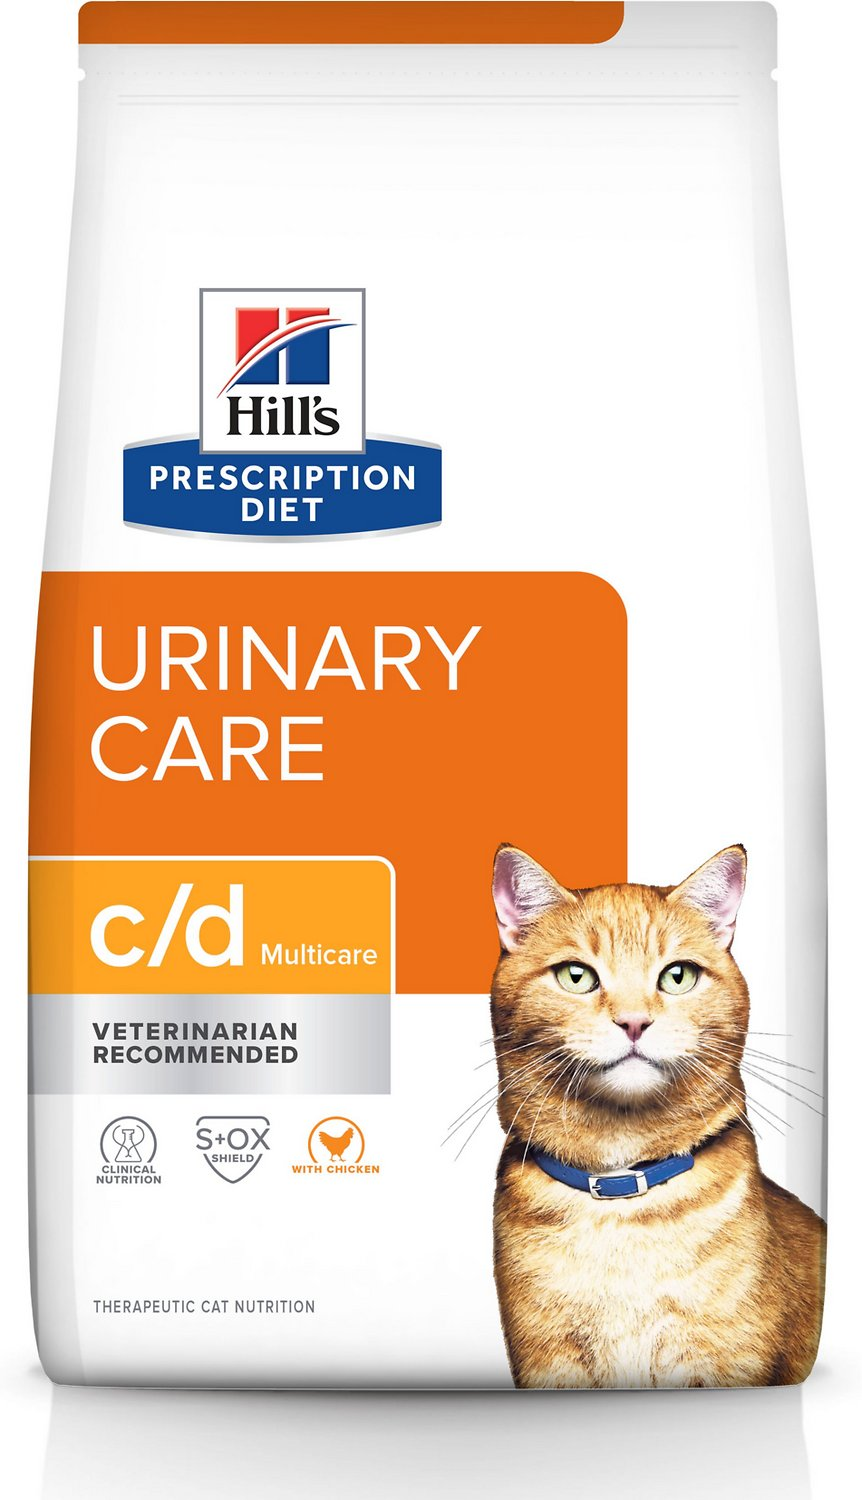 Dry Cat Food Reviews